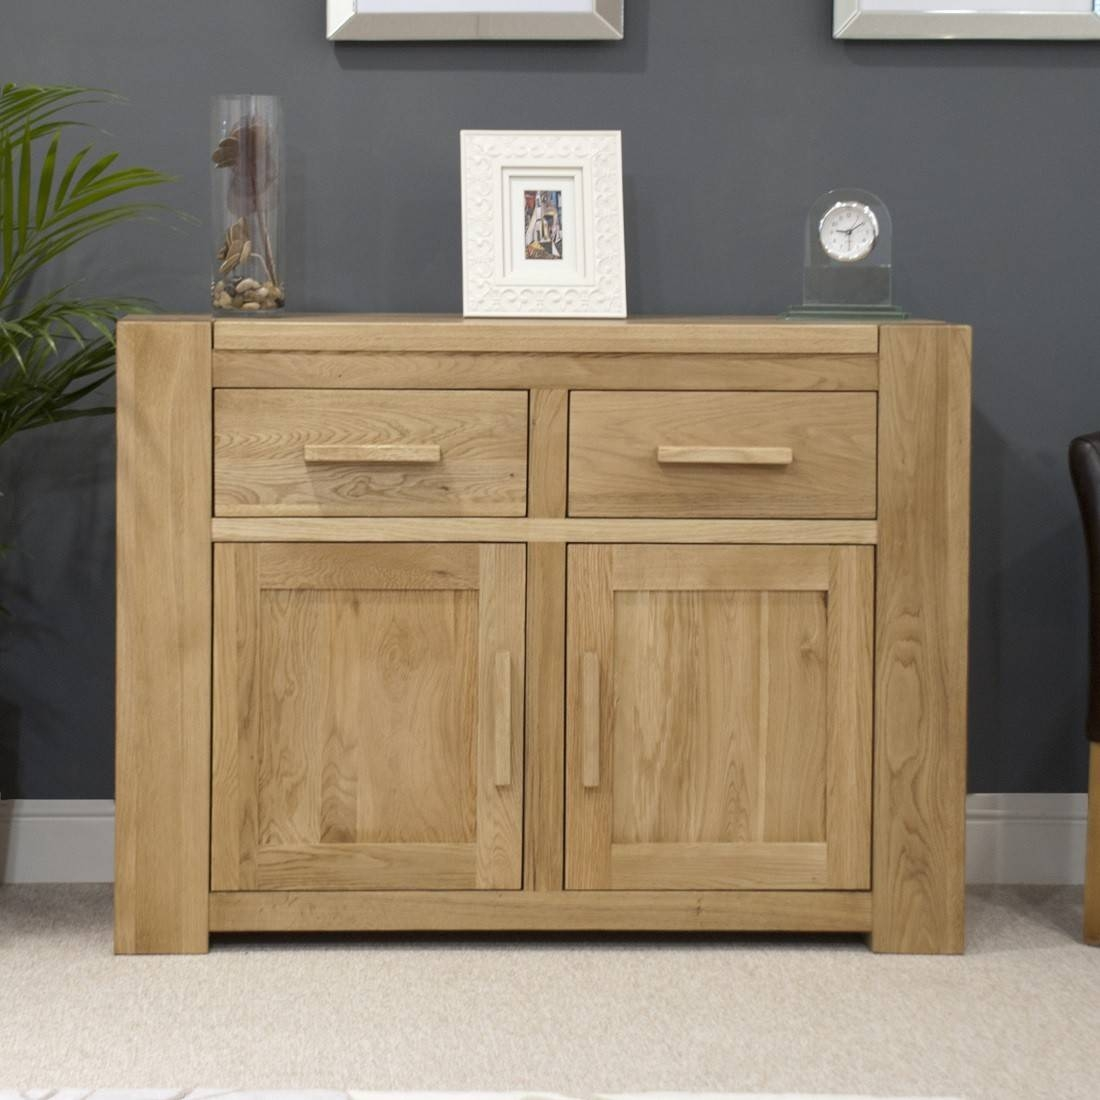 Oak Sideboards | Oak Furniture Uk Pertaining To Small Sideboards With Drawers (View 13 of 30)